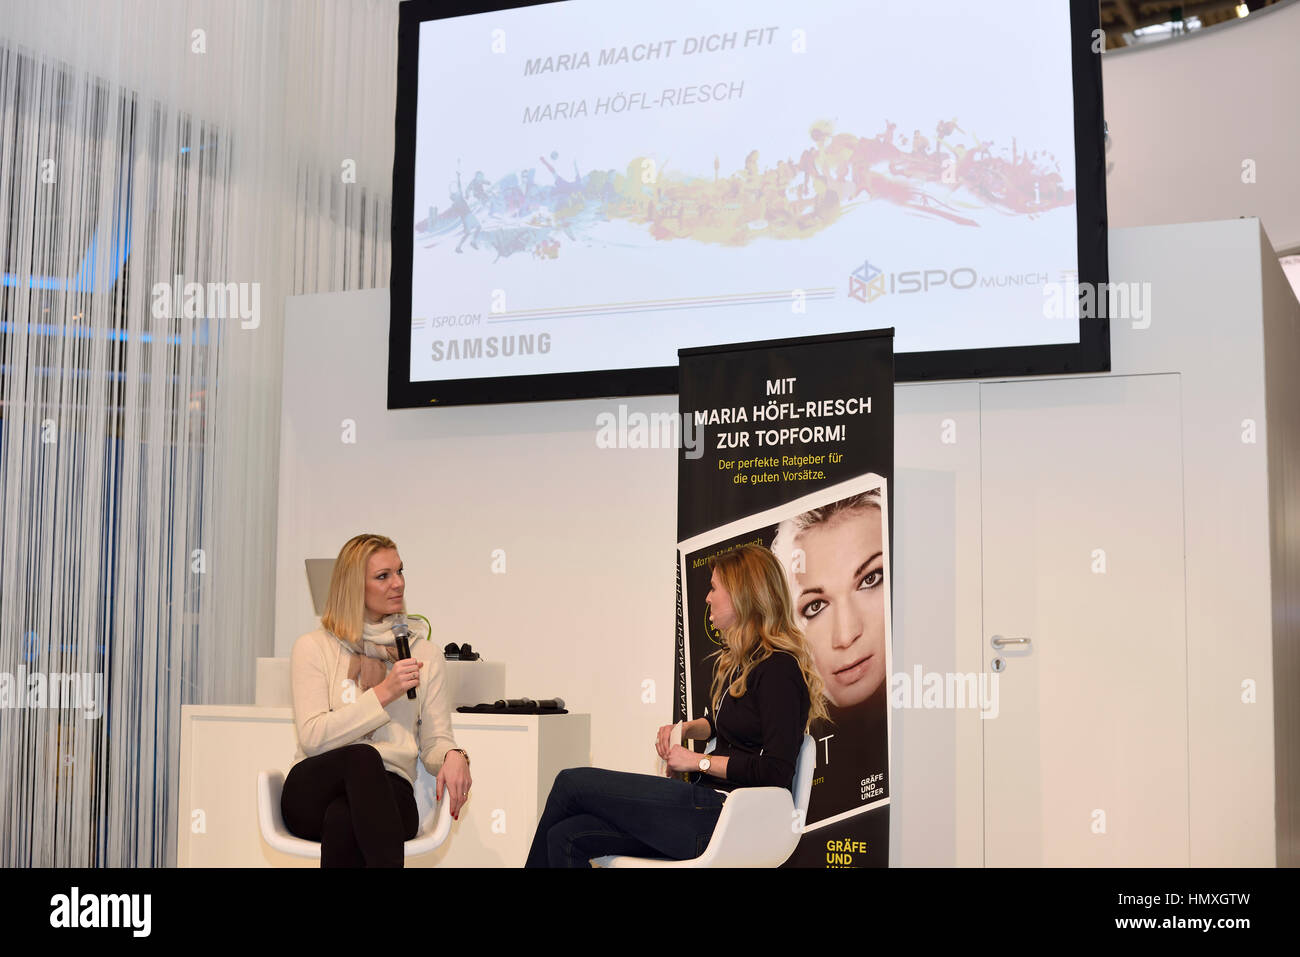 Munich, Germany. 6th February, 2017. Maria Höfl-Riesch (left side), former German alpine ski racer and Olympic - Stock Image